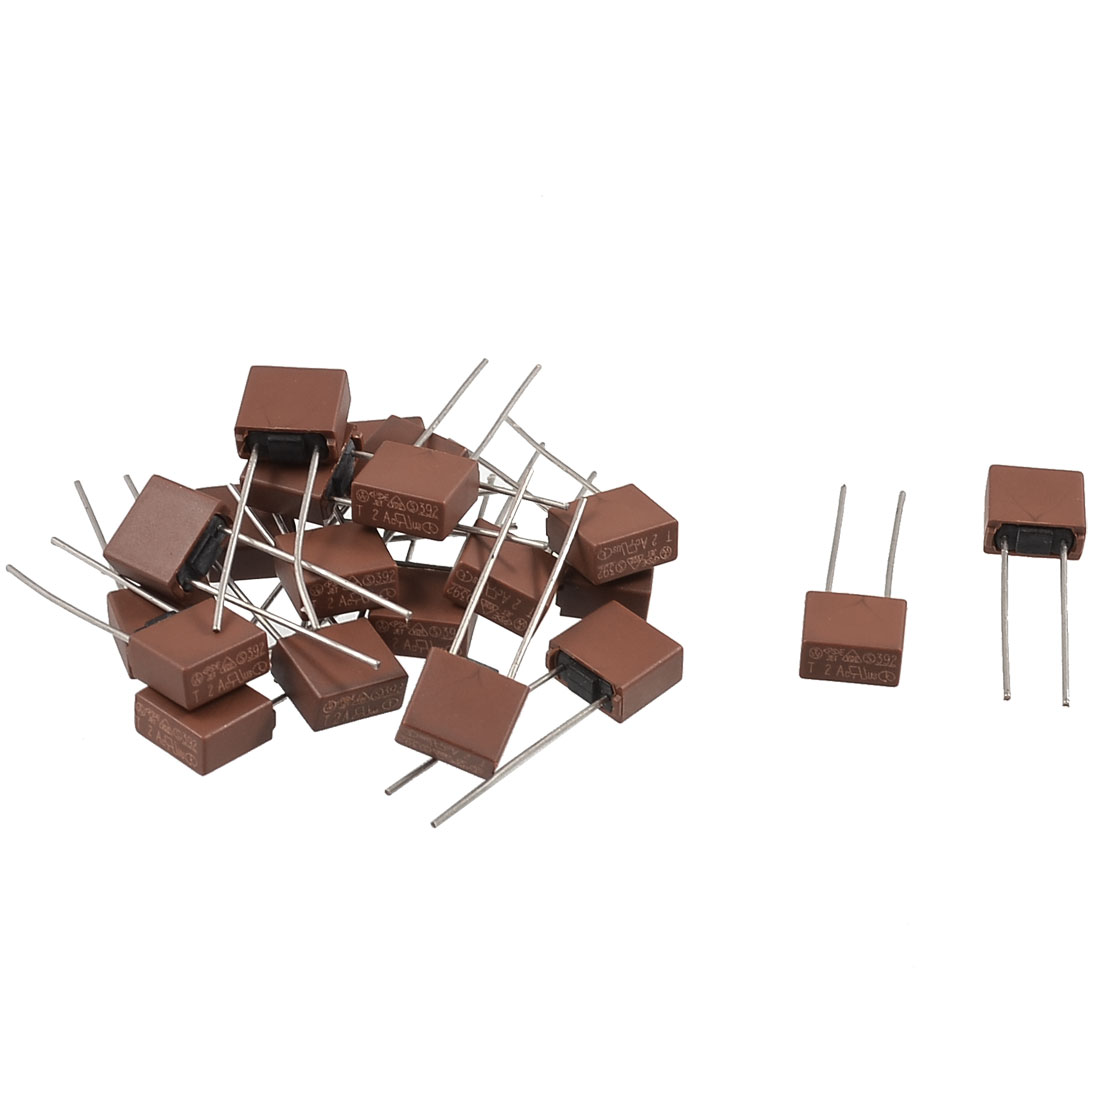 20 Pcs DIP Mounted Miniature Square Slow Blow Micro Fuse T2A 2A 250V